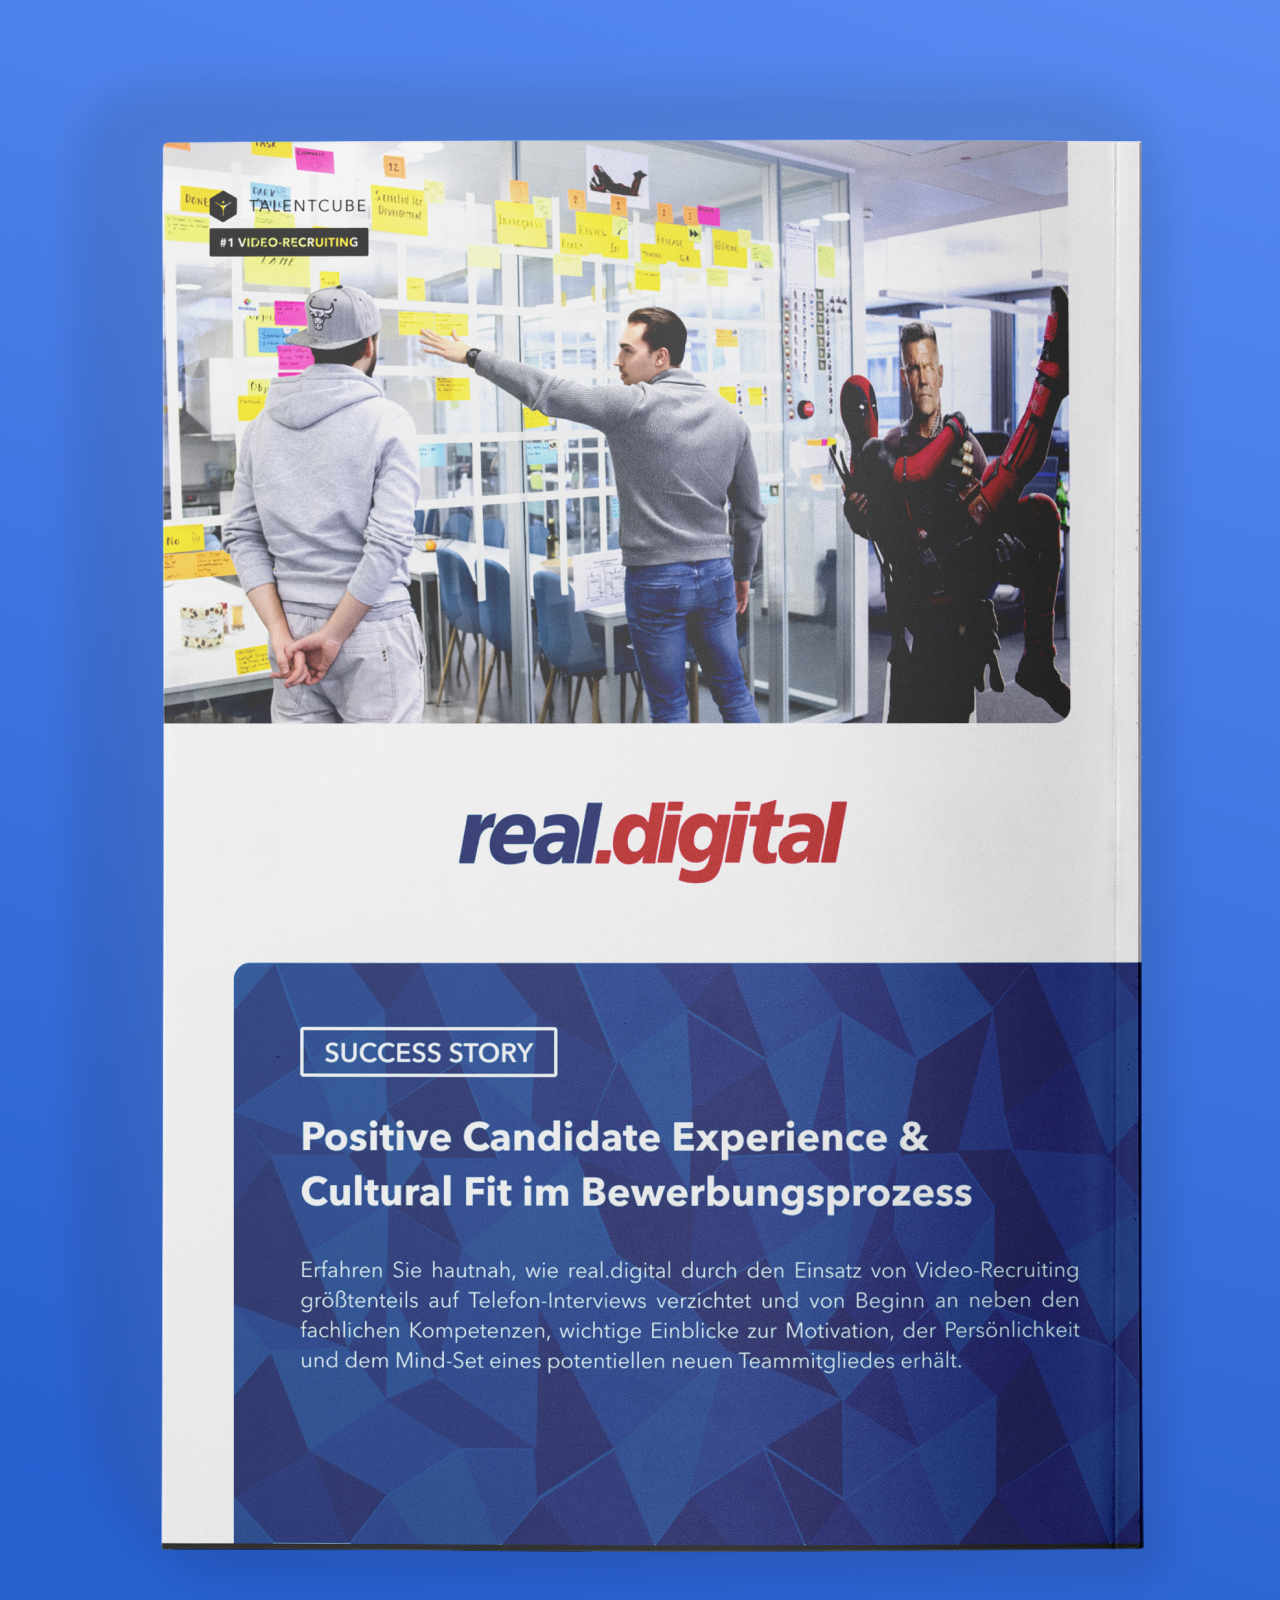 real.digital – Positive Candidate Experience & Cultural Fit